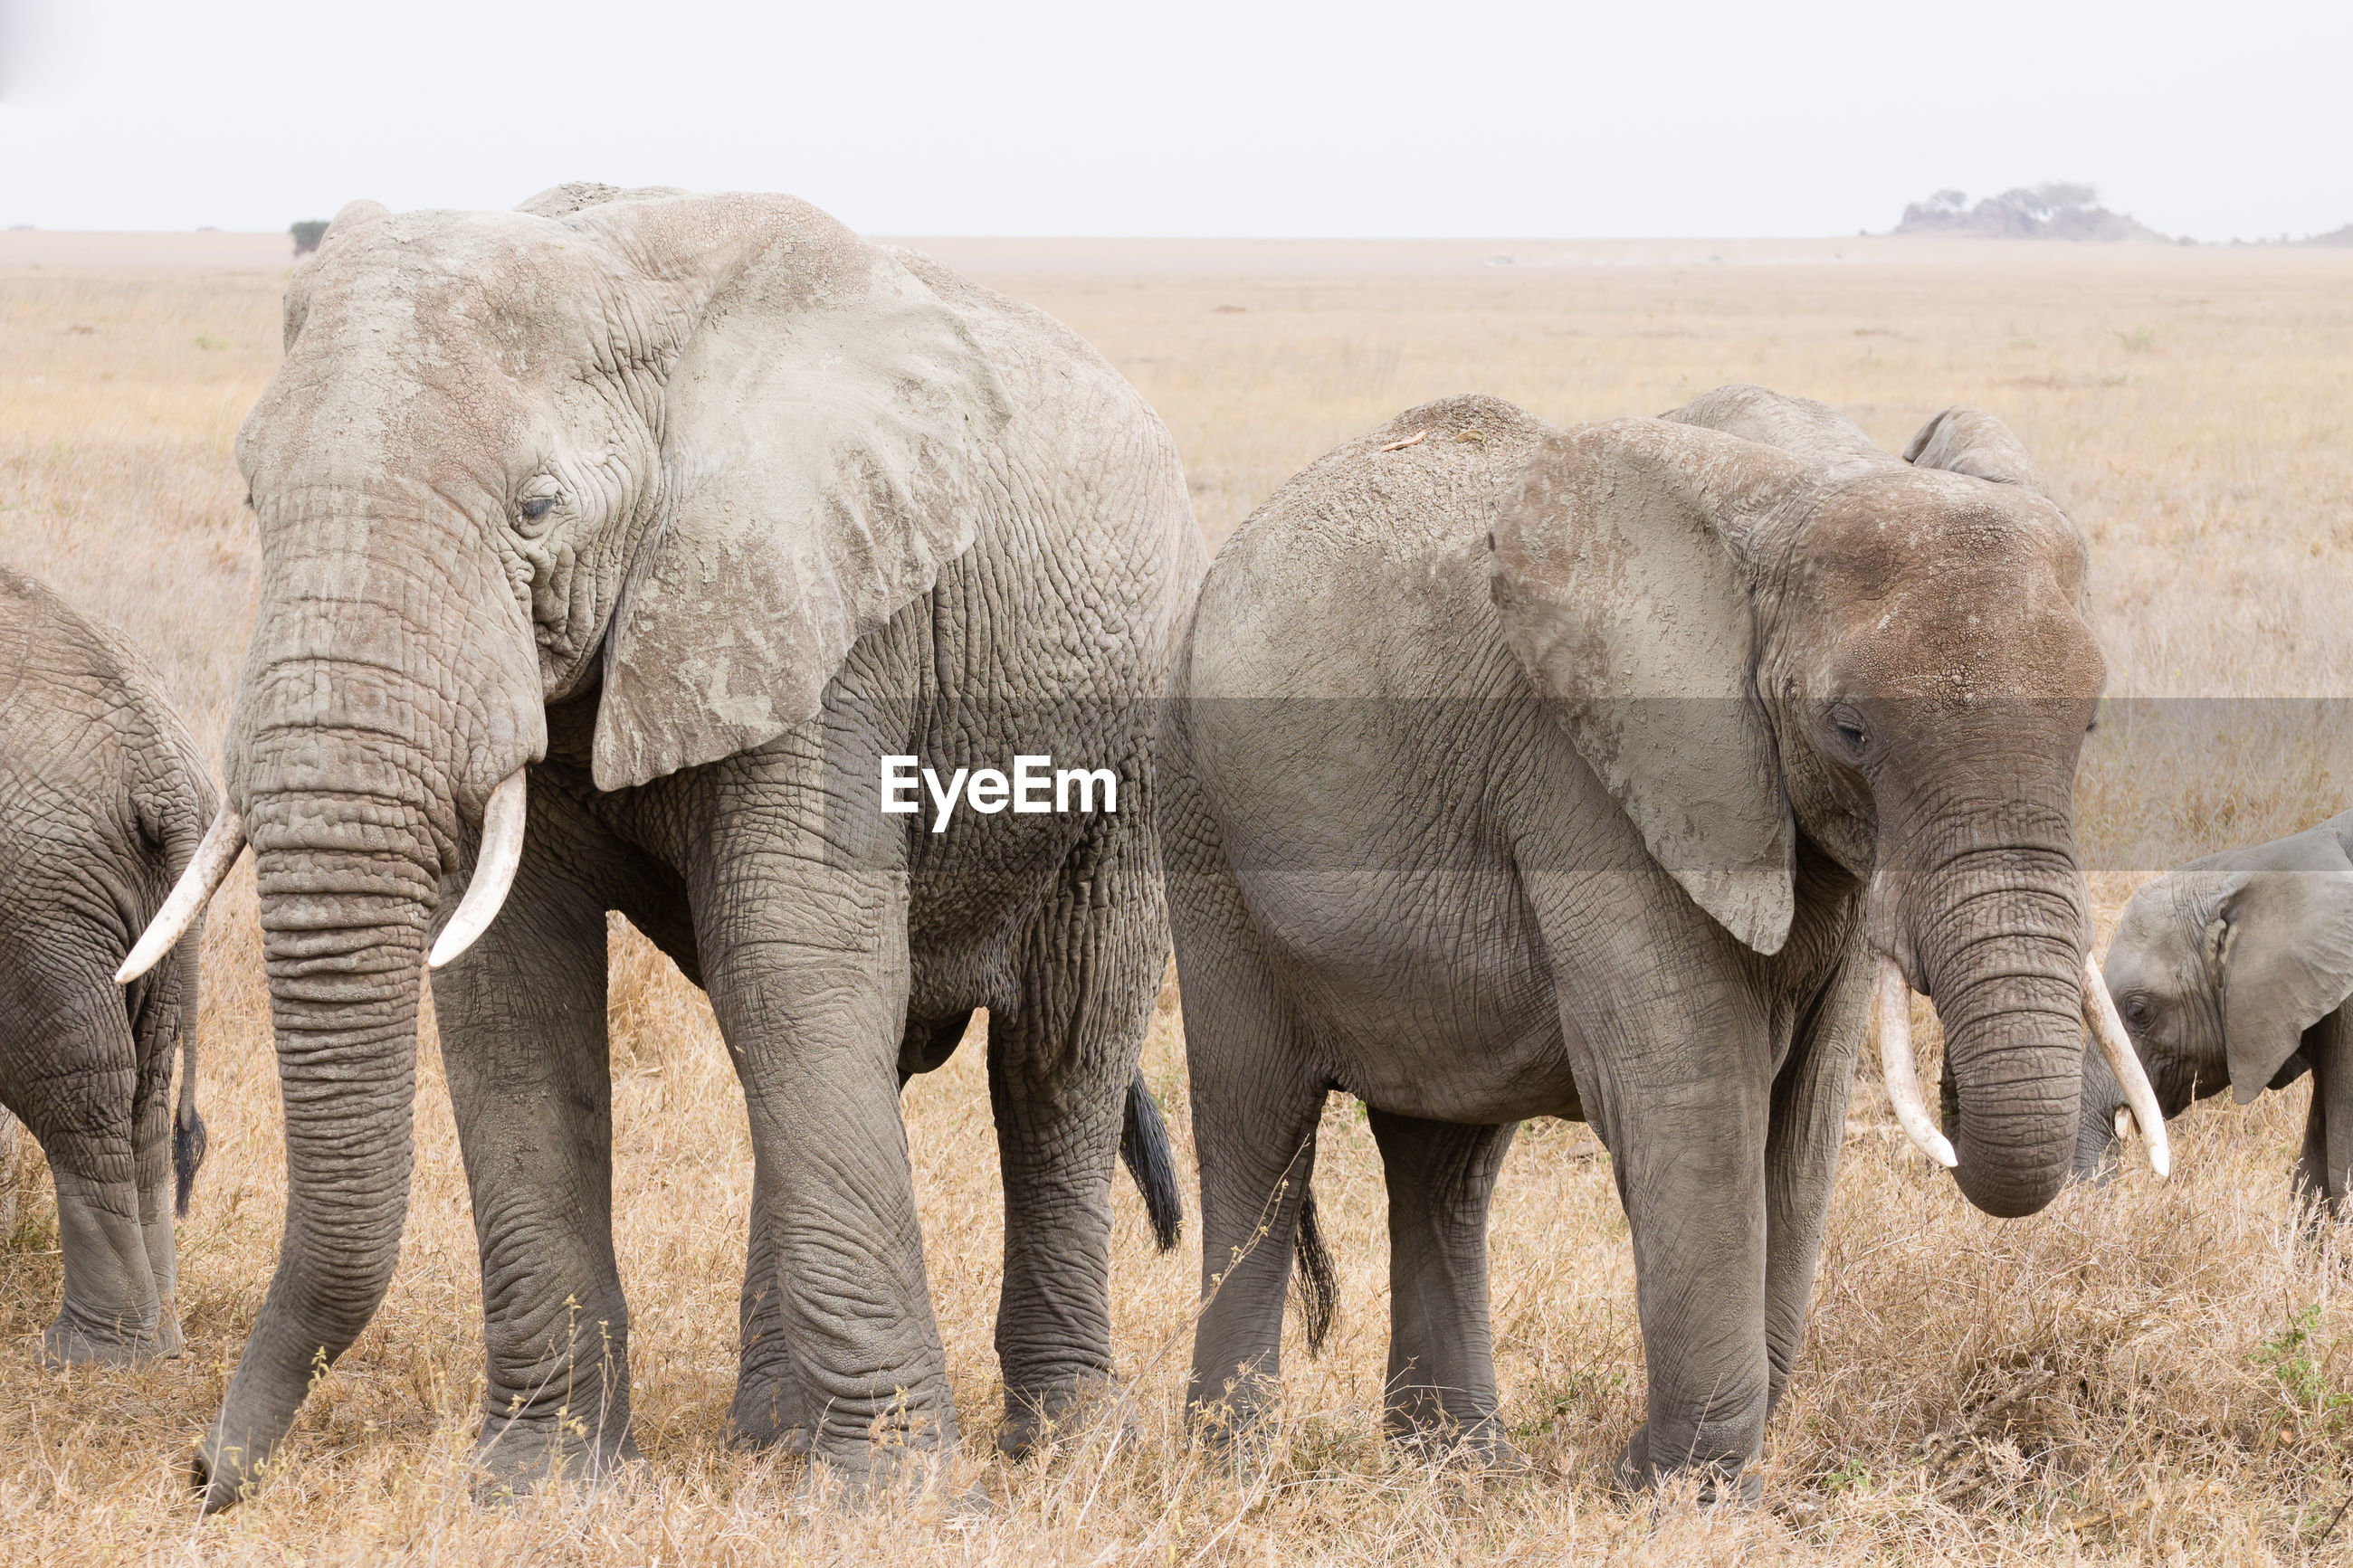 VIEW OF ELEPHANT IN THE FIELD